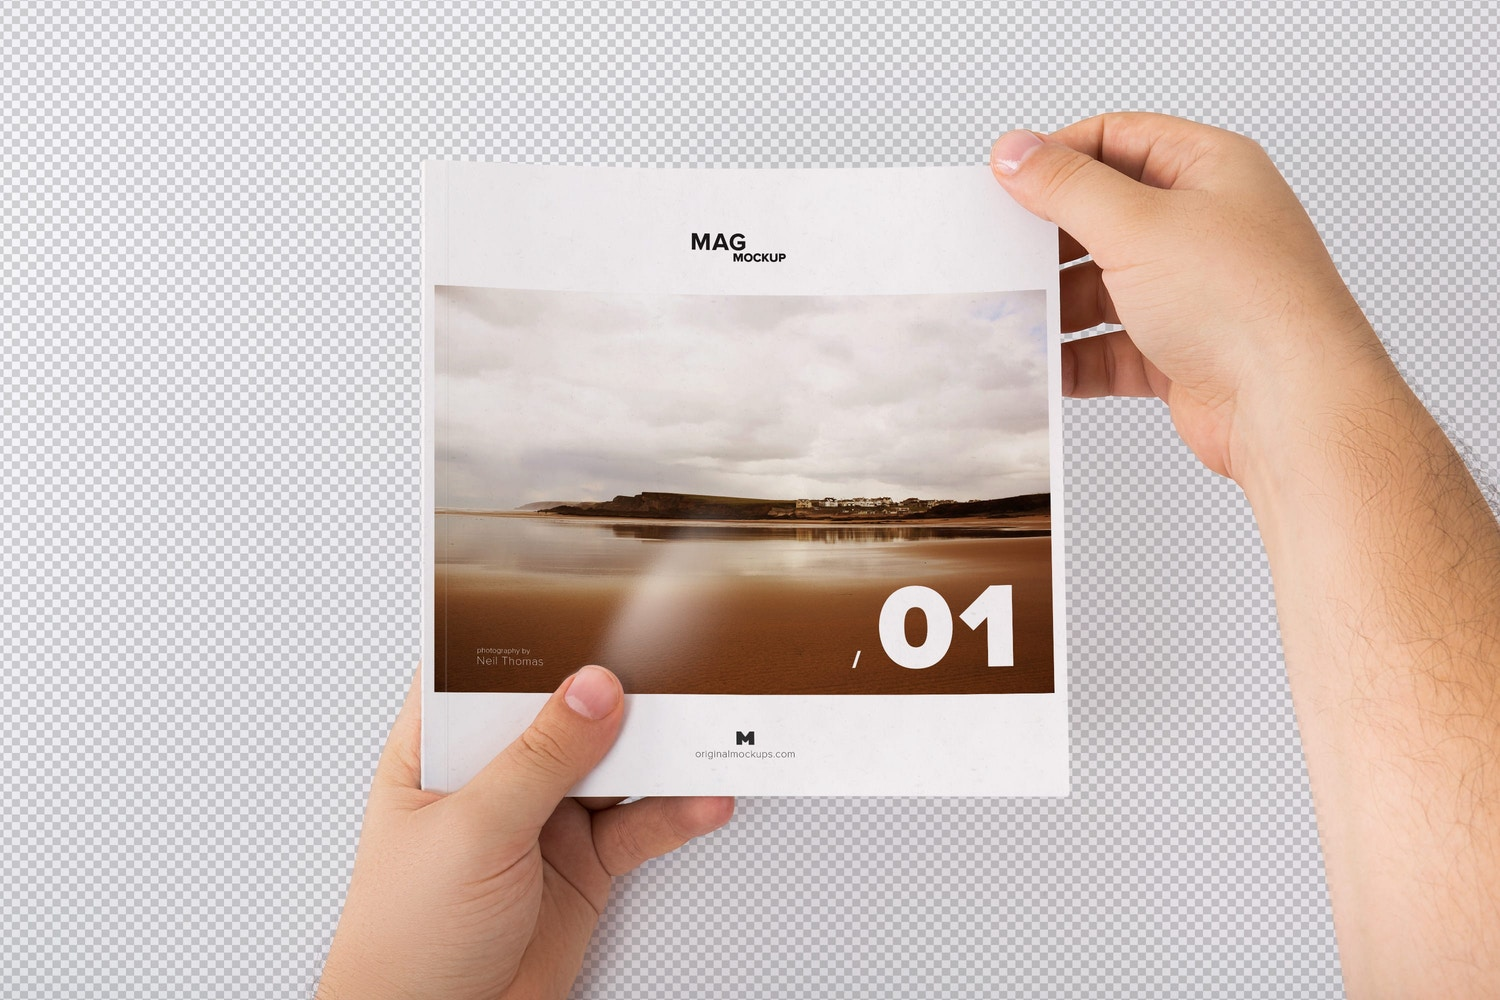 Holding Closed Square Magazine Mockup 01 - Custom Background